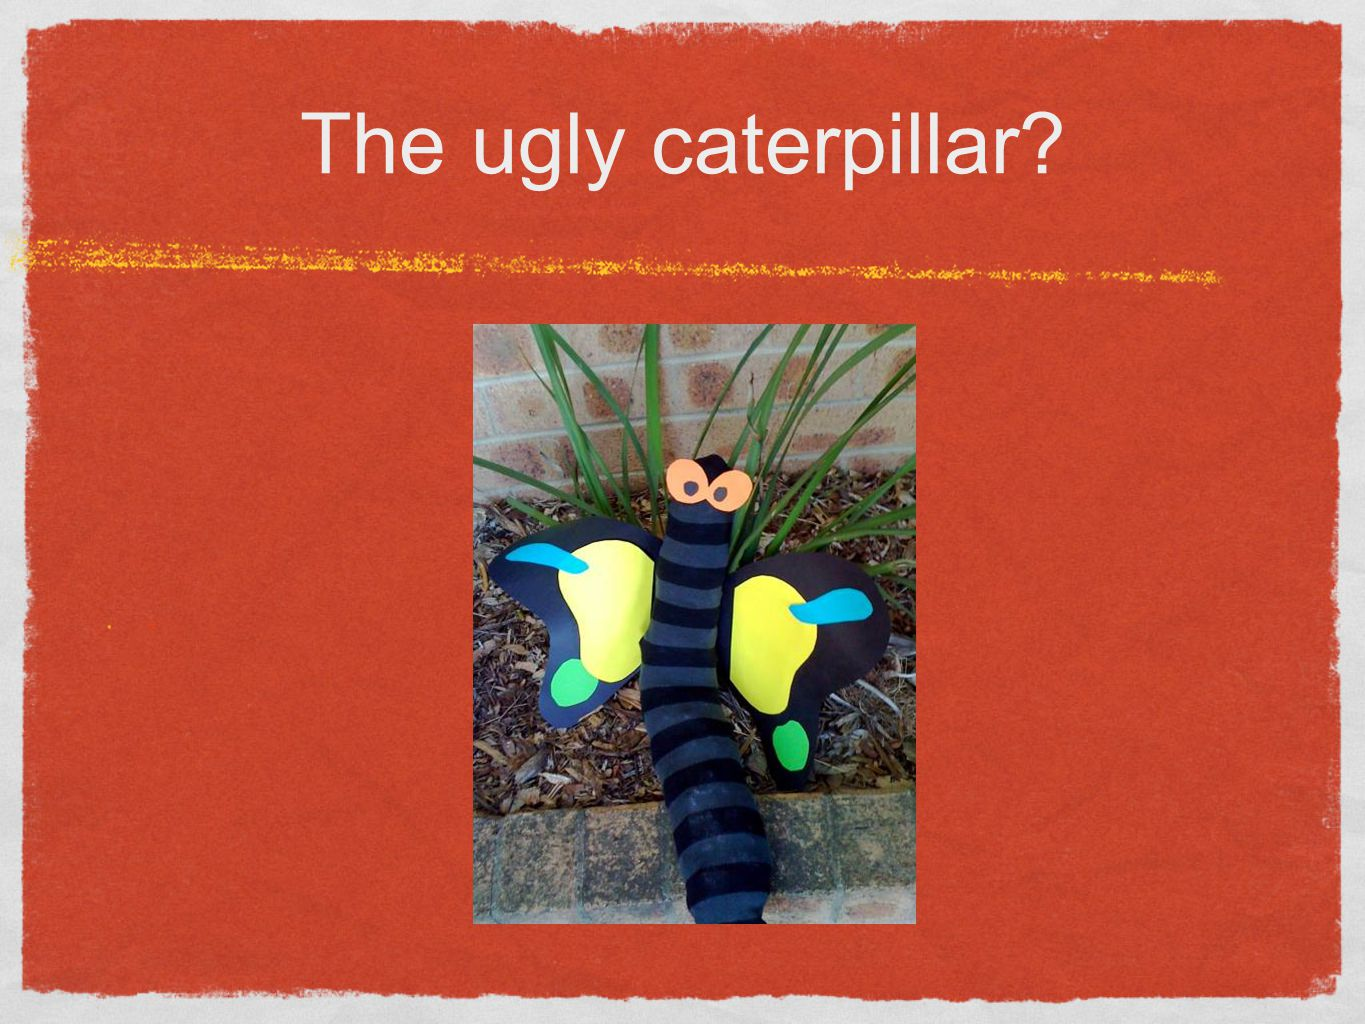 The ugly caterpillar x